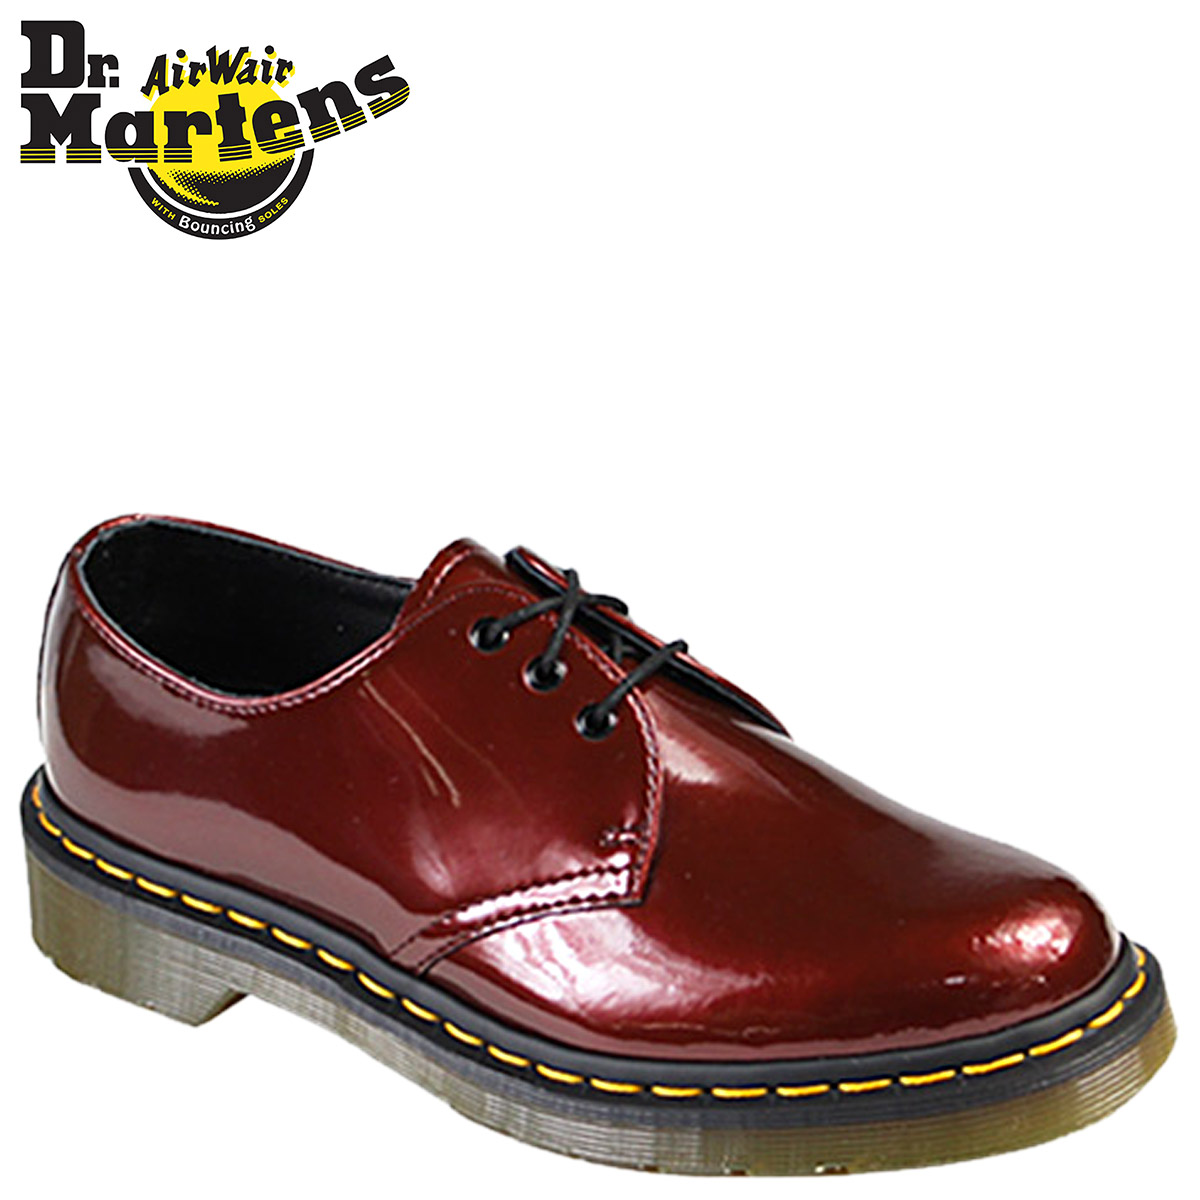 a6d5bf37cd1 Dr.Martens doctor Martin 1461 3 hall shoes Lady's WOMENS CORE 3EYE SHOE  R10084604 men